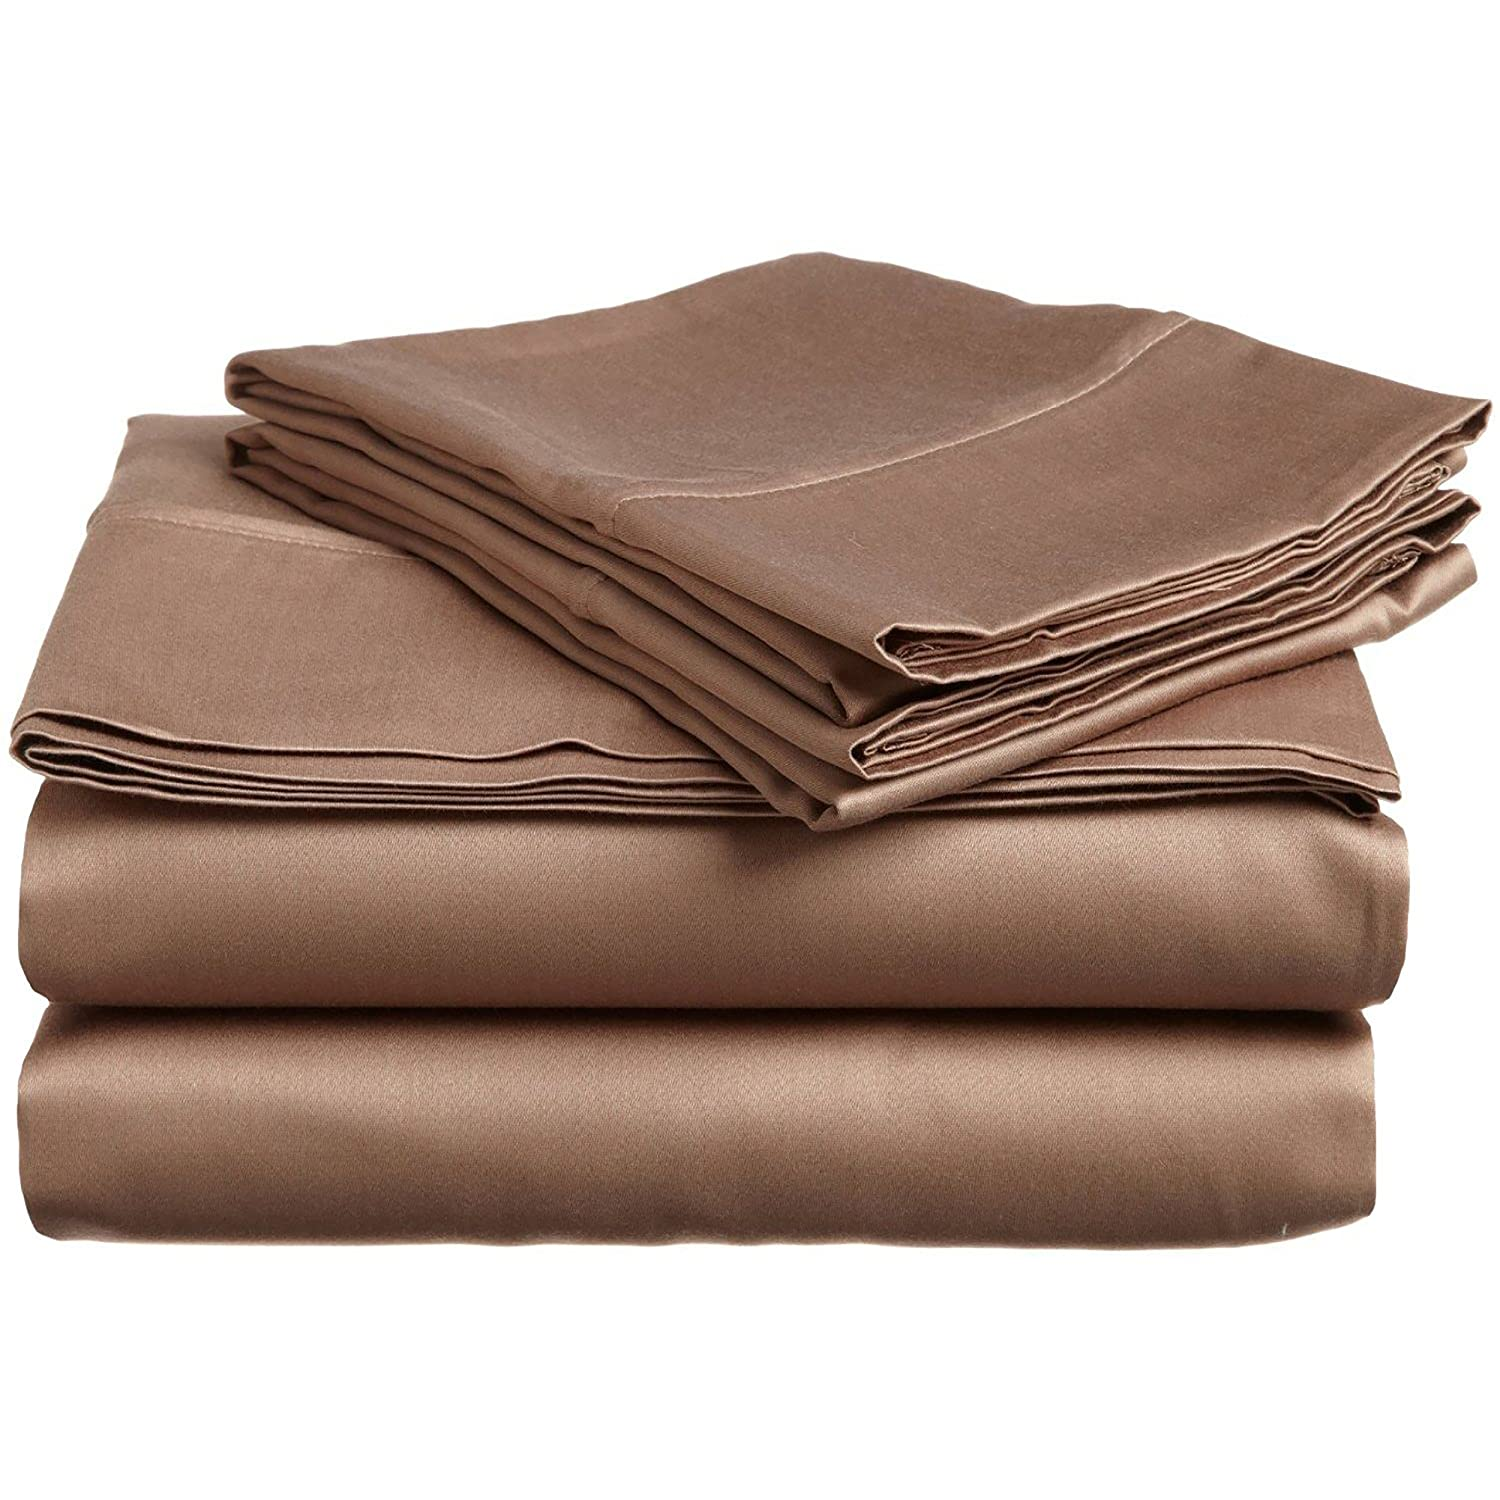 Taupe California King Superior 100% Premium Combed Cotton, 4-Piece Sheet and Pillowcase Cover Set, Solid, Queen - White